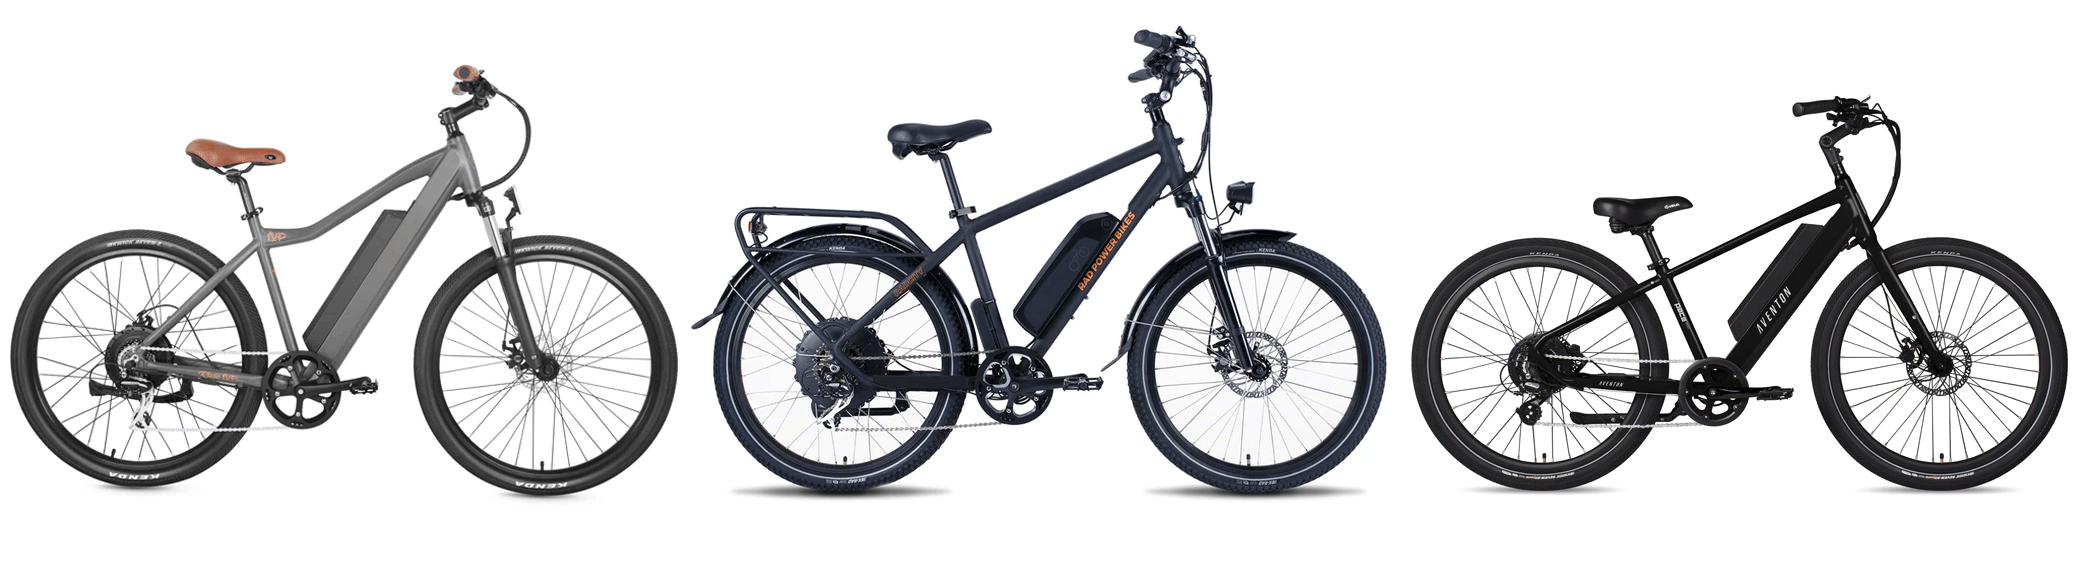 Electric bike comparison between Rode1UP 500 Series, Rad Power Bikes RadCity 4 and Aventon Pace 500